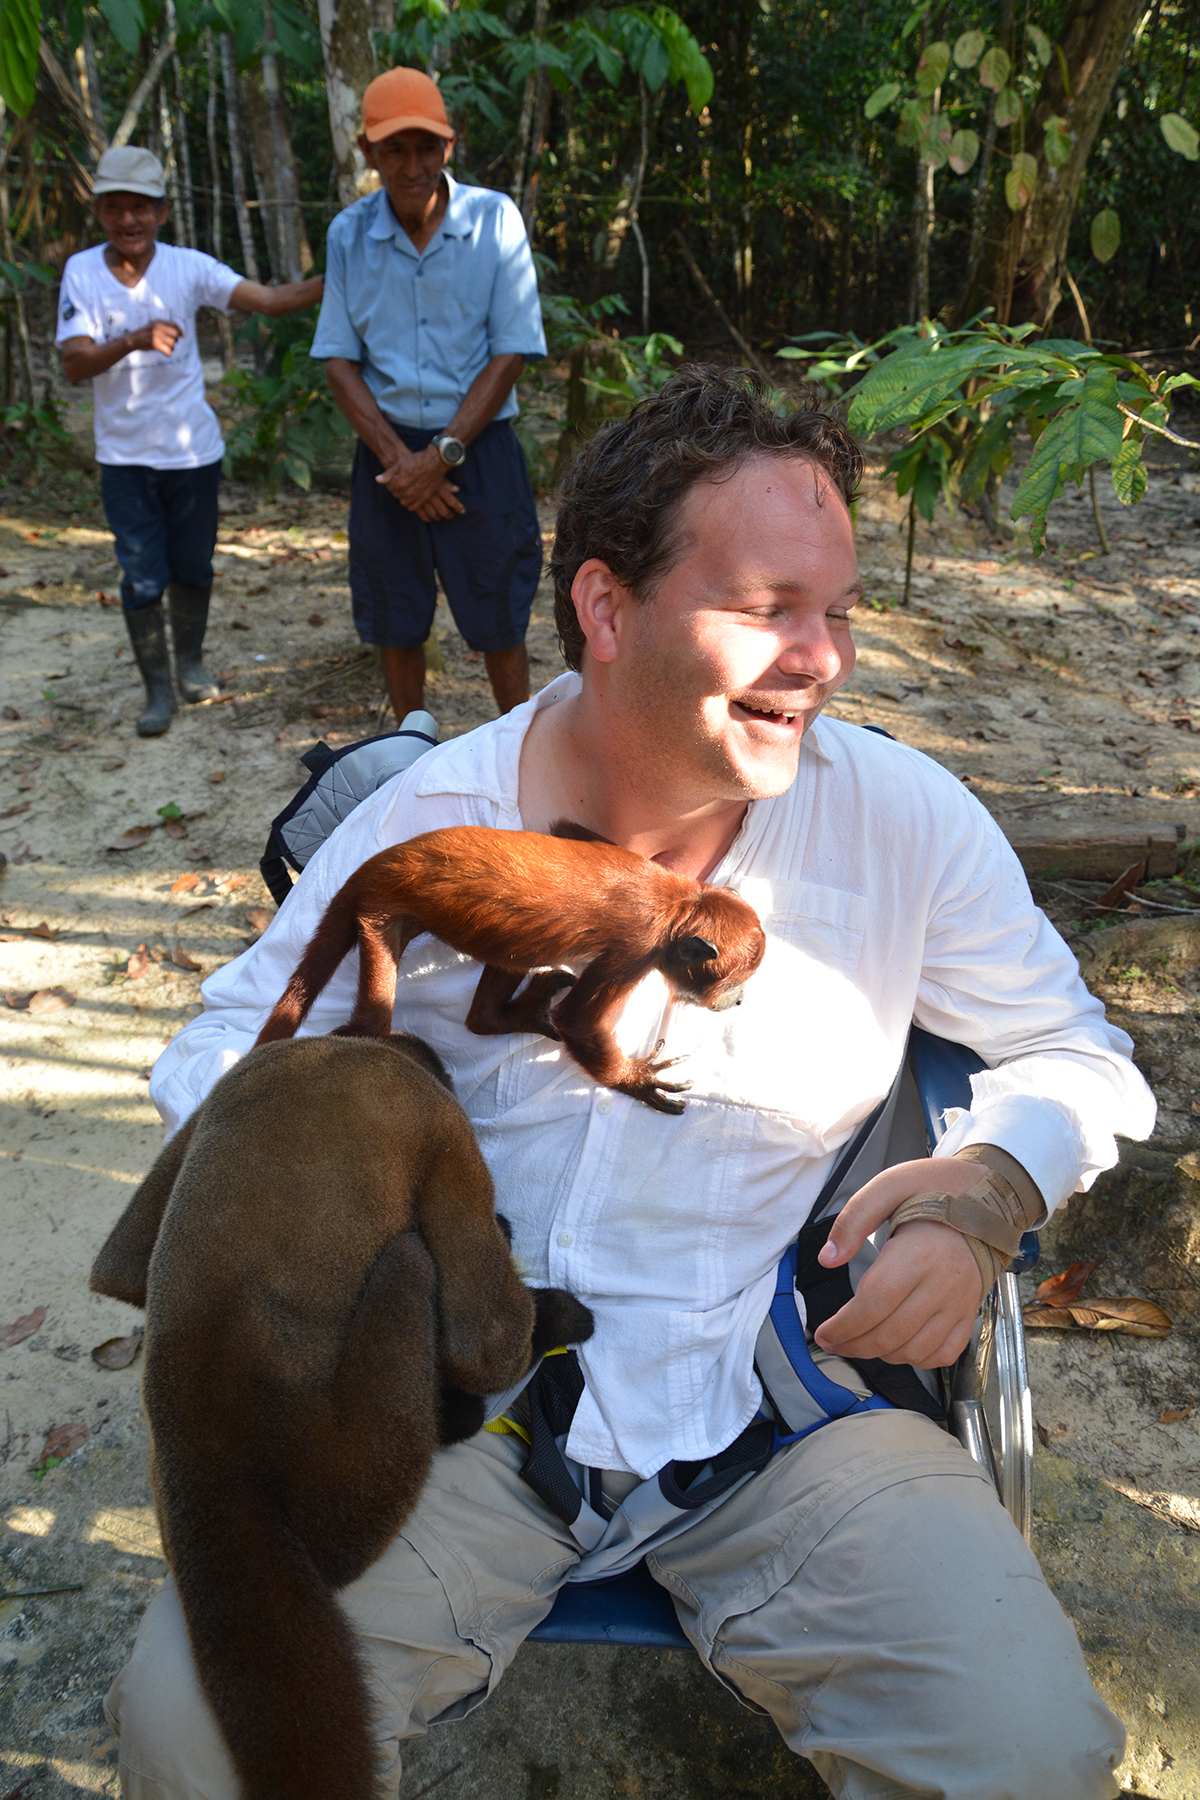 Dan Eley playing with monkeys at Tanimboca National Reserve